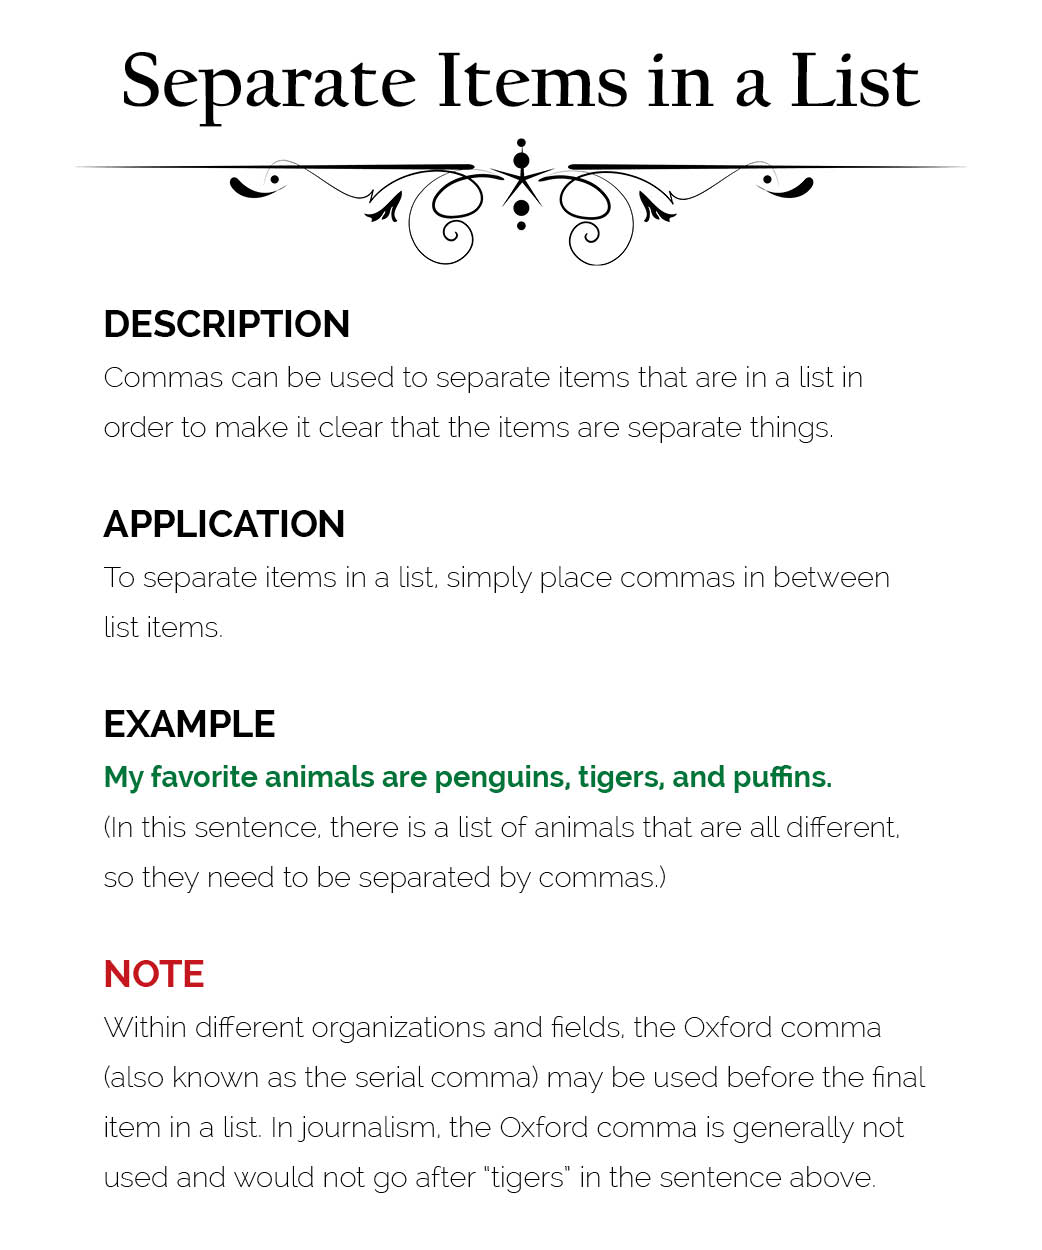 comma-use-1-separates-items-in-a-list